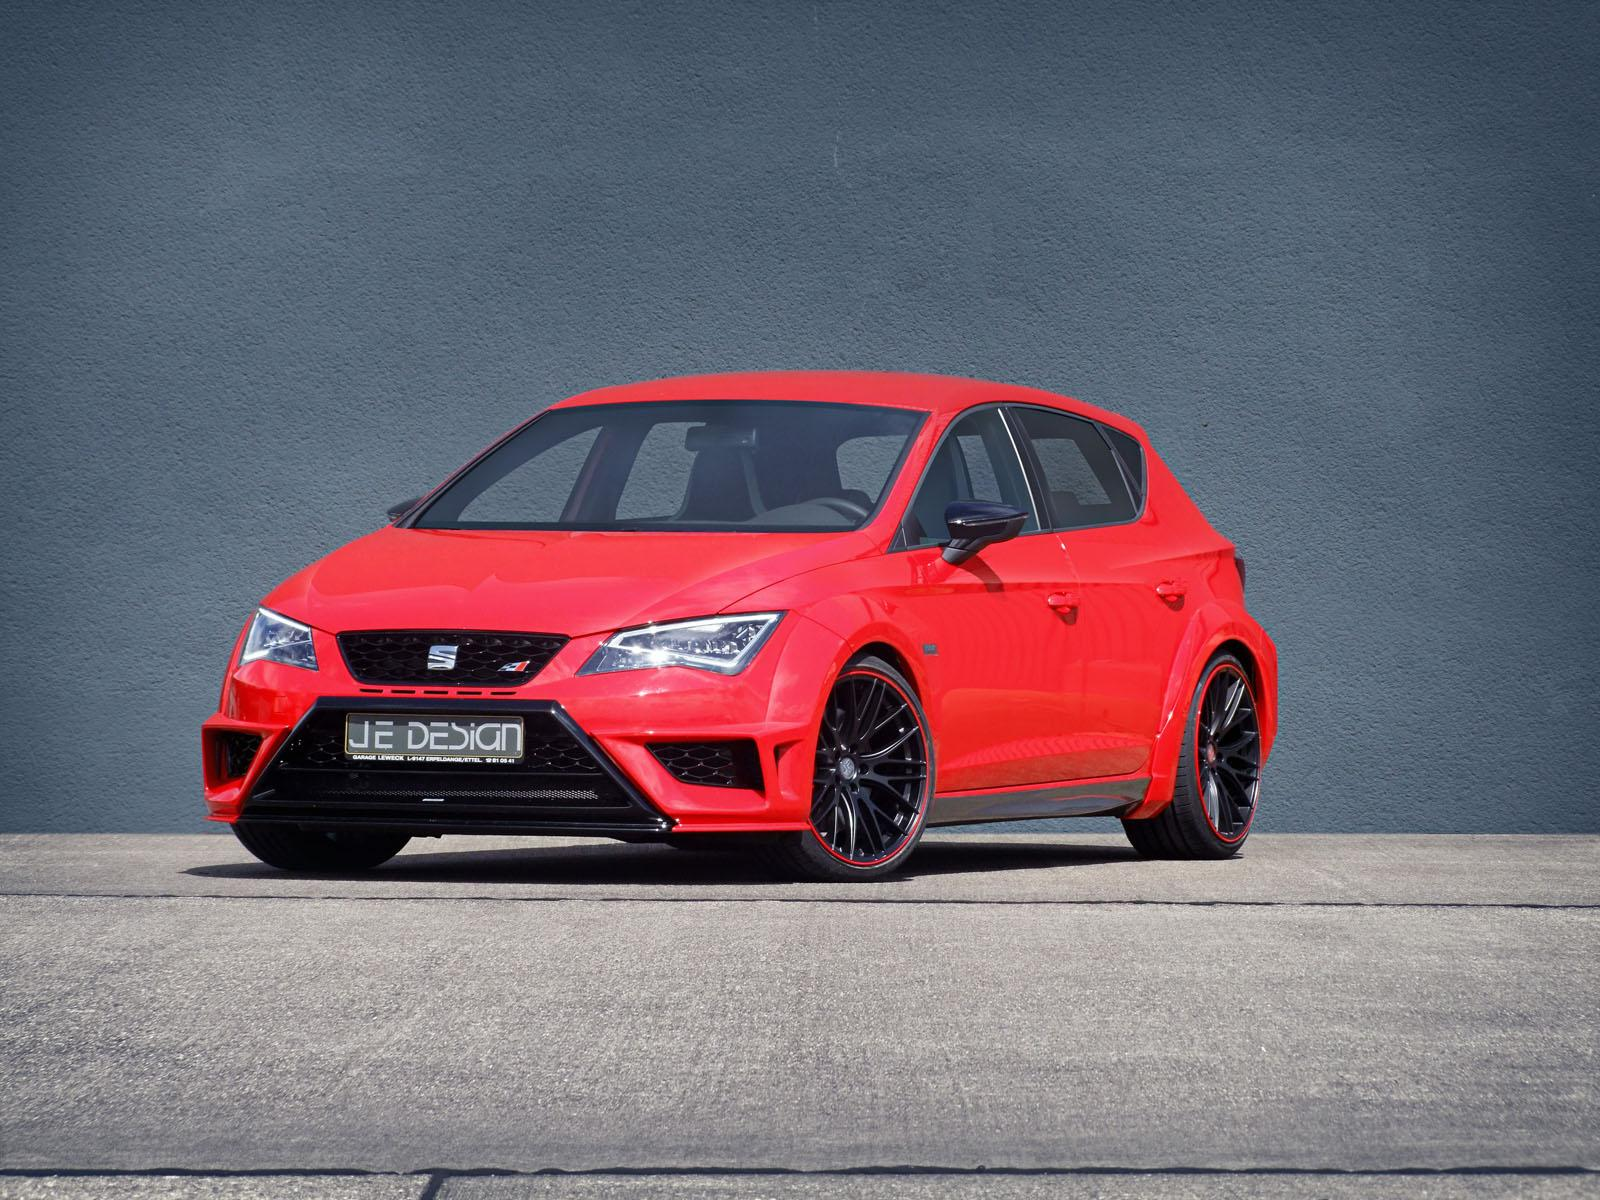 seat leon cupra gets widebody kit from je design autoevolution. Black Bedroom Furniture Sets. Home Design Ideas